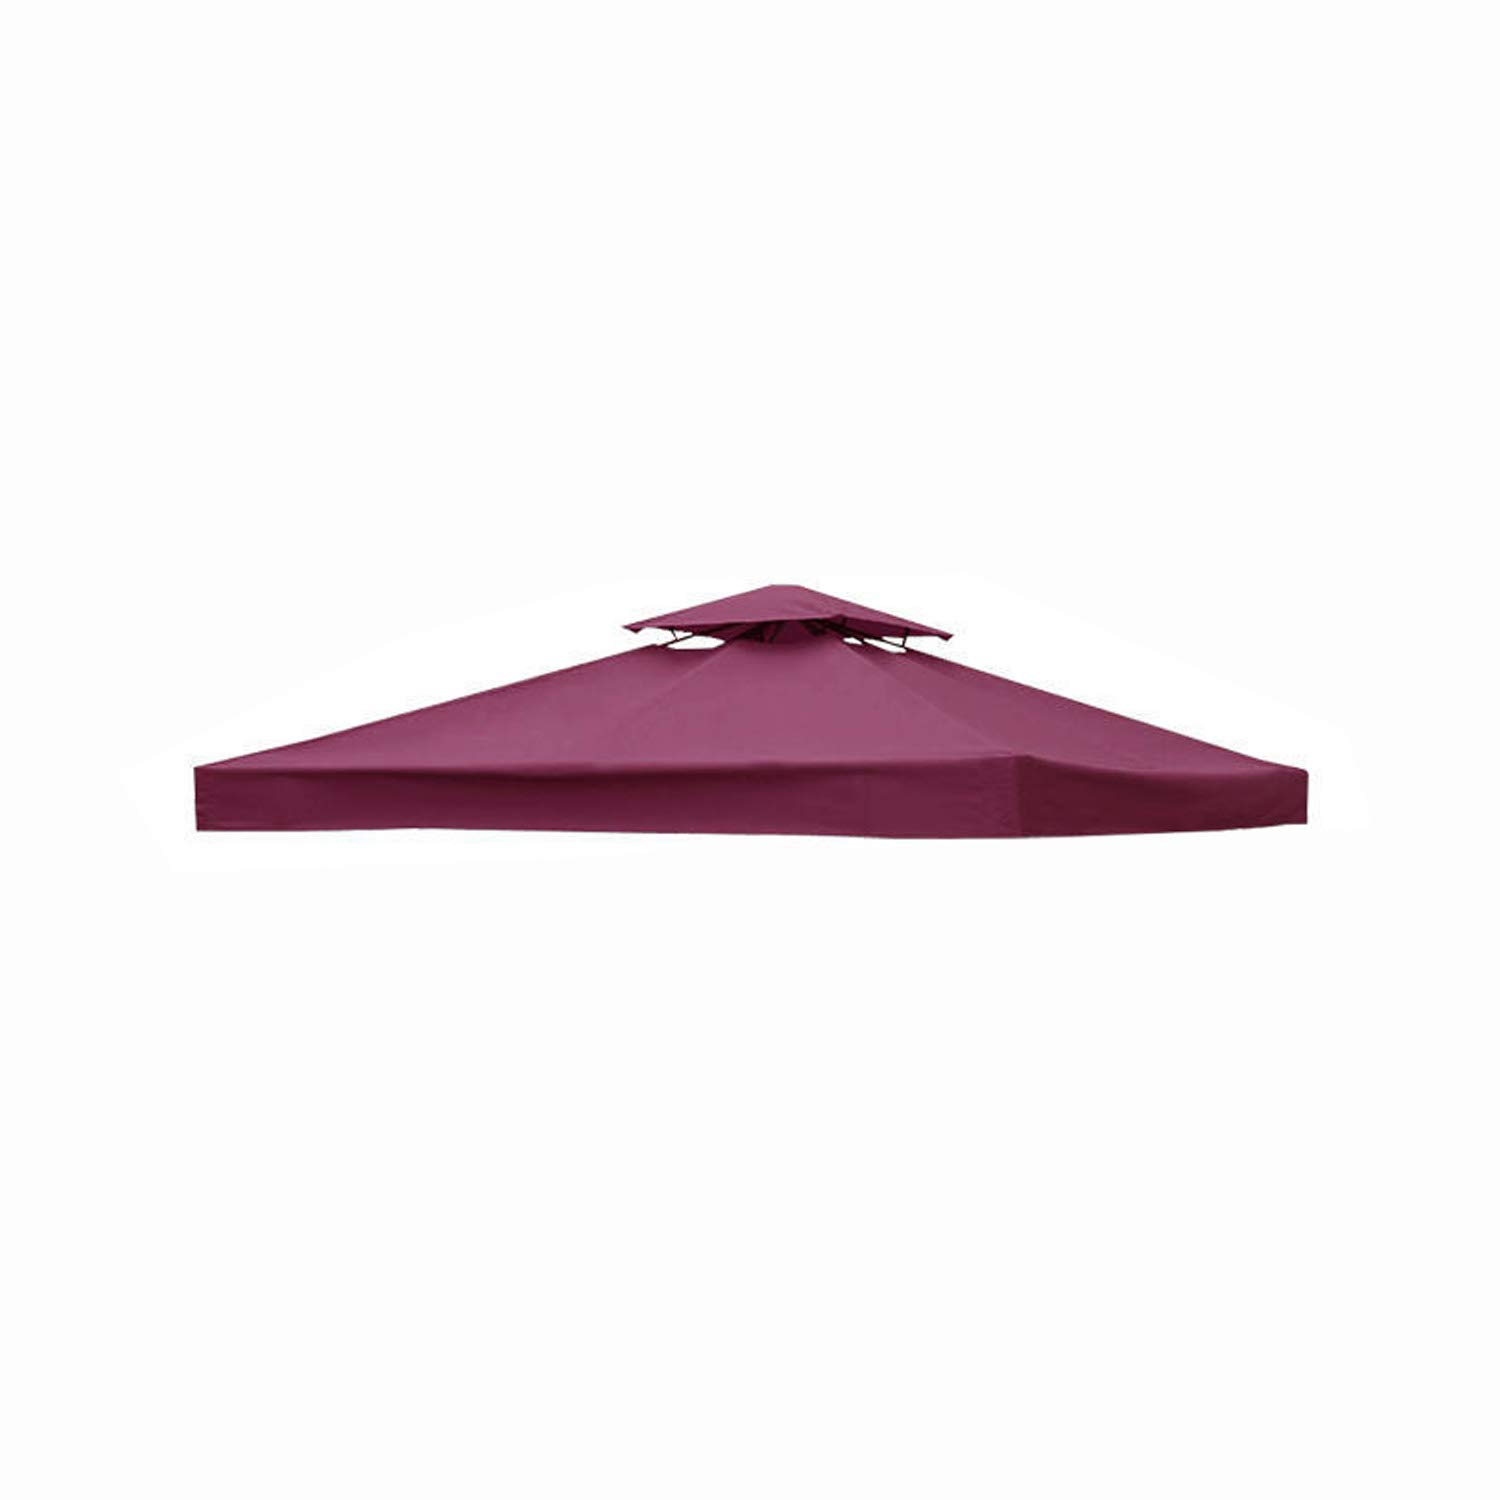 furniture-uk-shop 3x3m Garden Gazebo Top Cover Roof Replacement Fabric Tent Canopy (2-Tier, Wine)